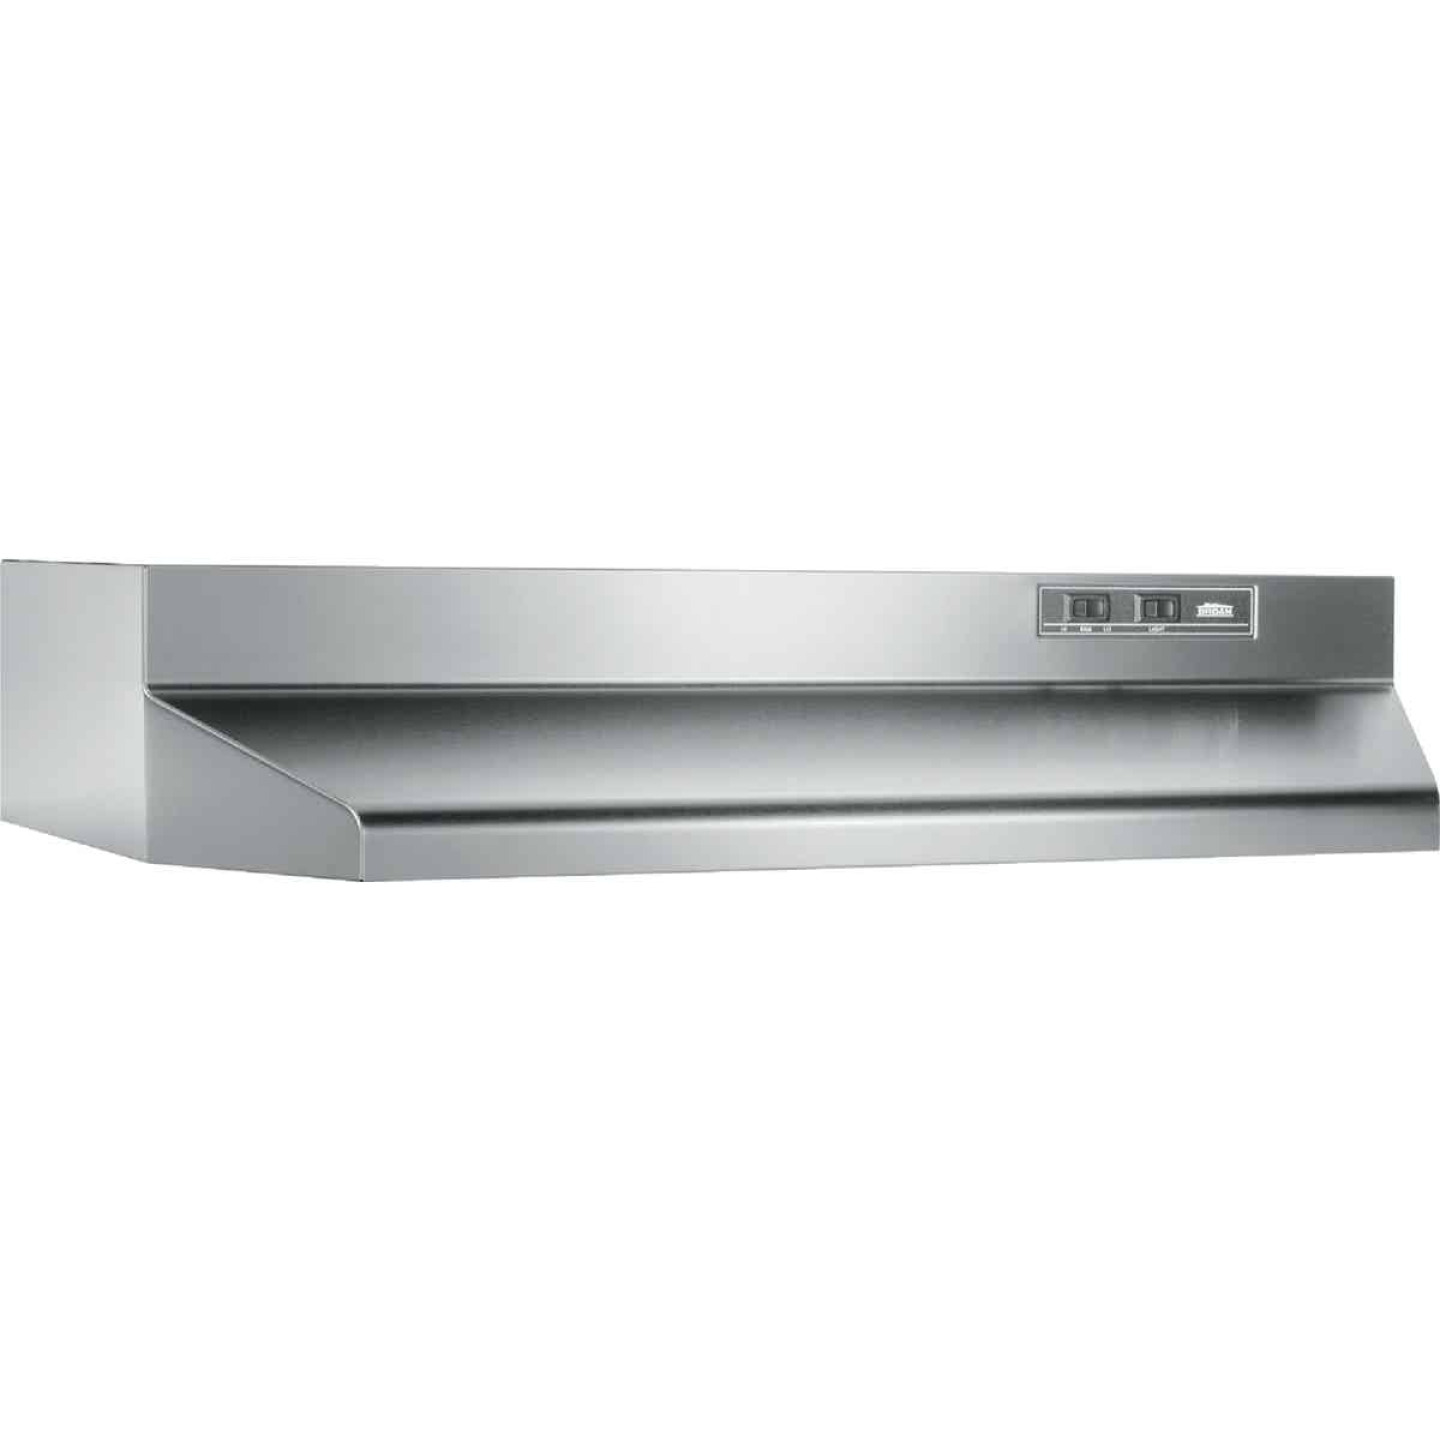 Broan-Nutone 40000 Series 30 In. Ducted Stainless Steel Range Hood Image 1